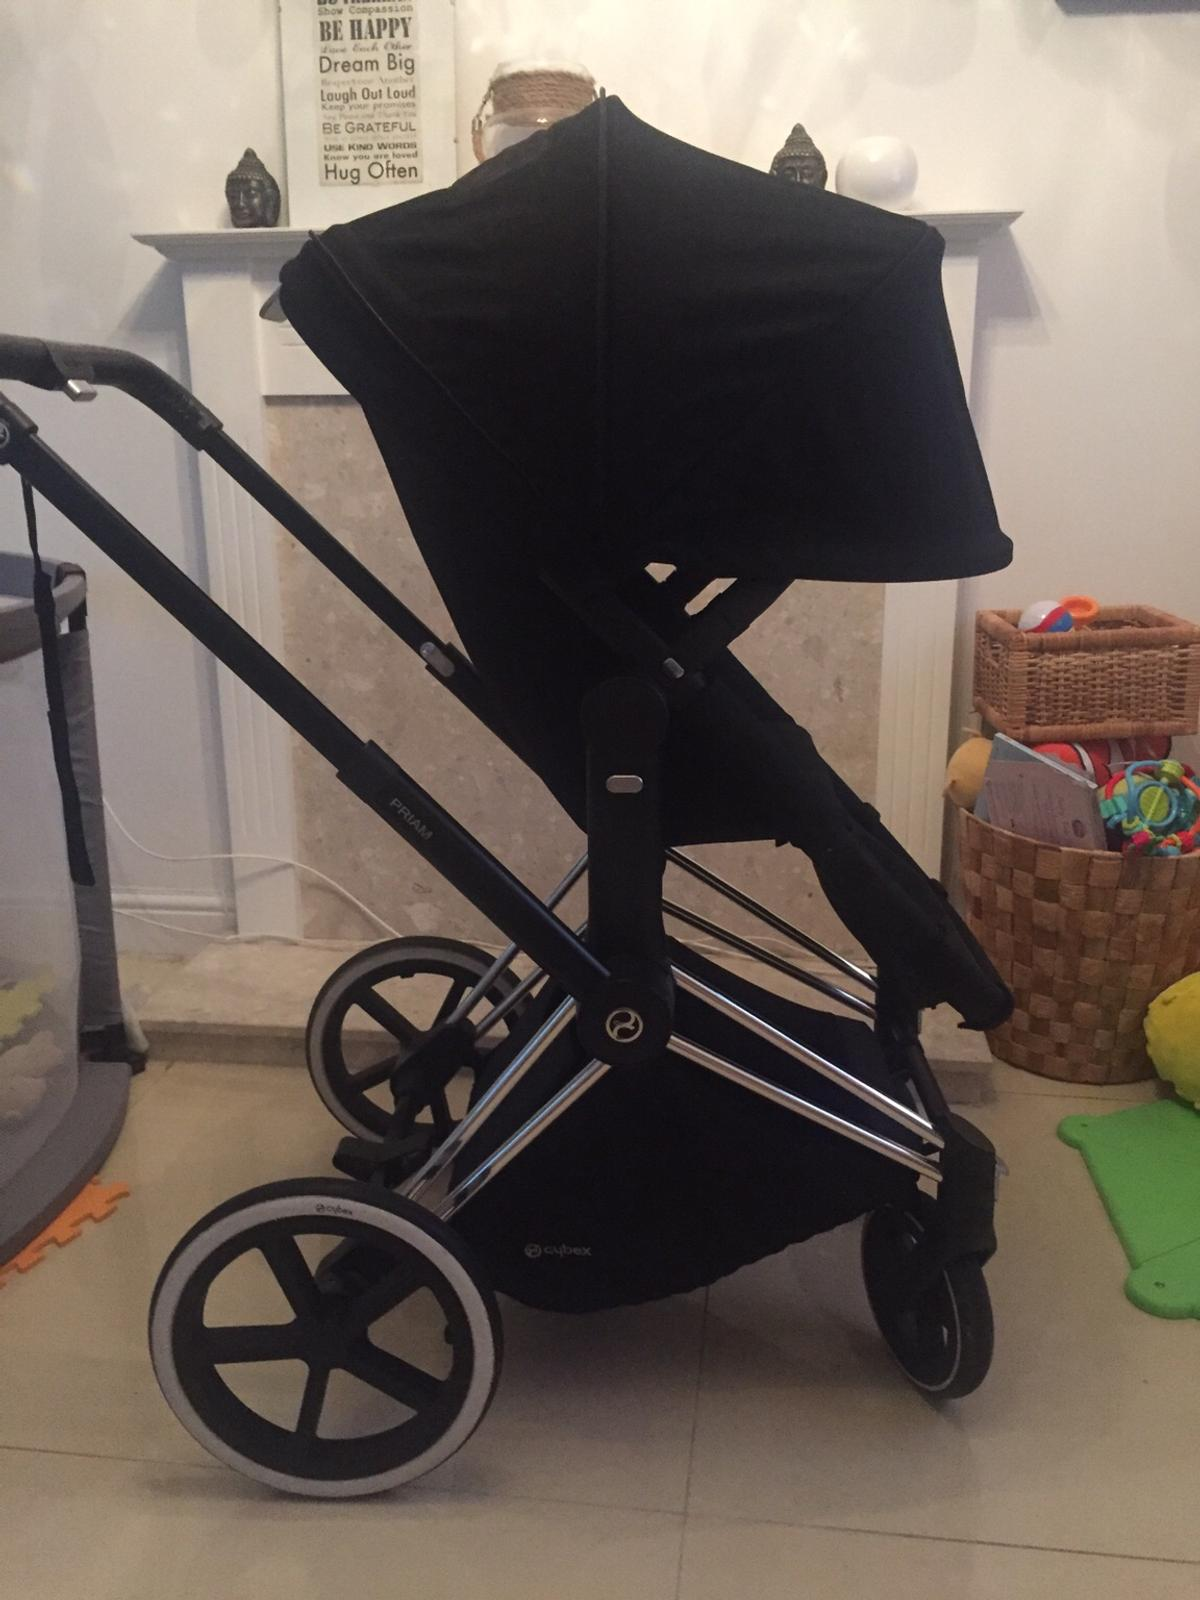 Cybex Priam Platinum Travel System Perf Cond In En4 London For